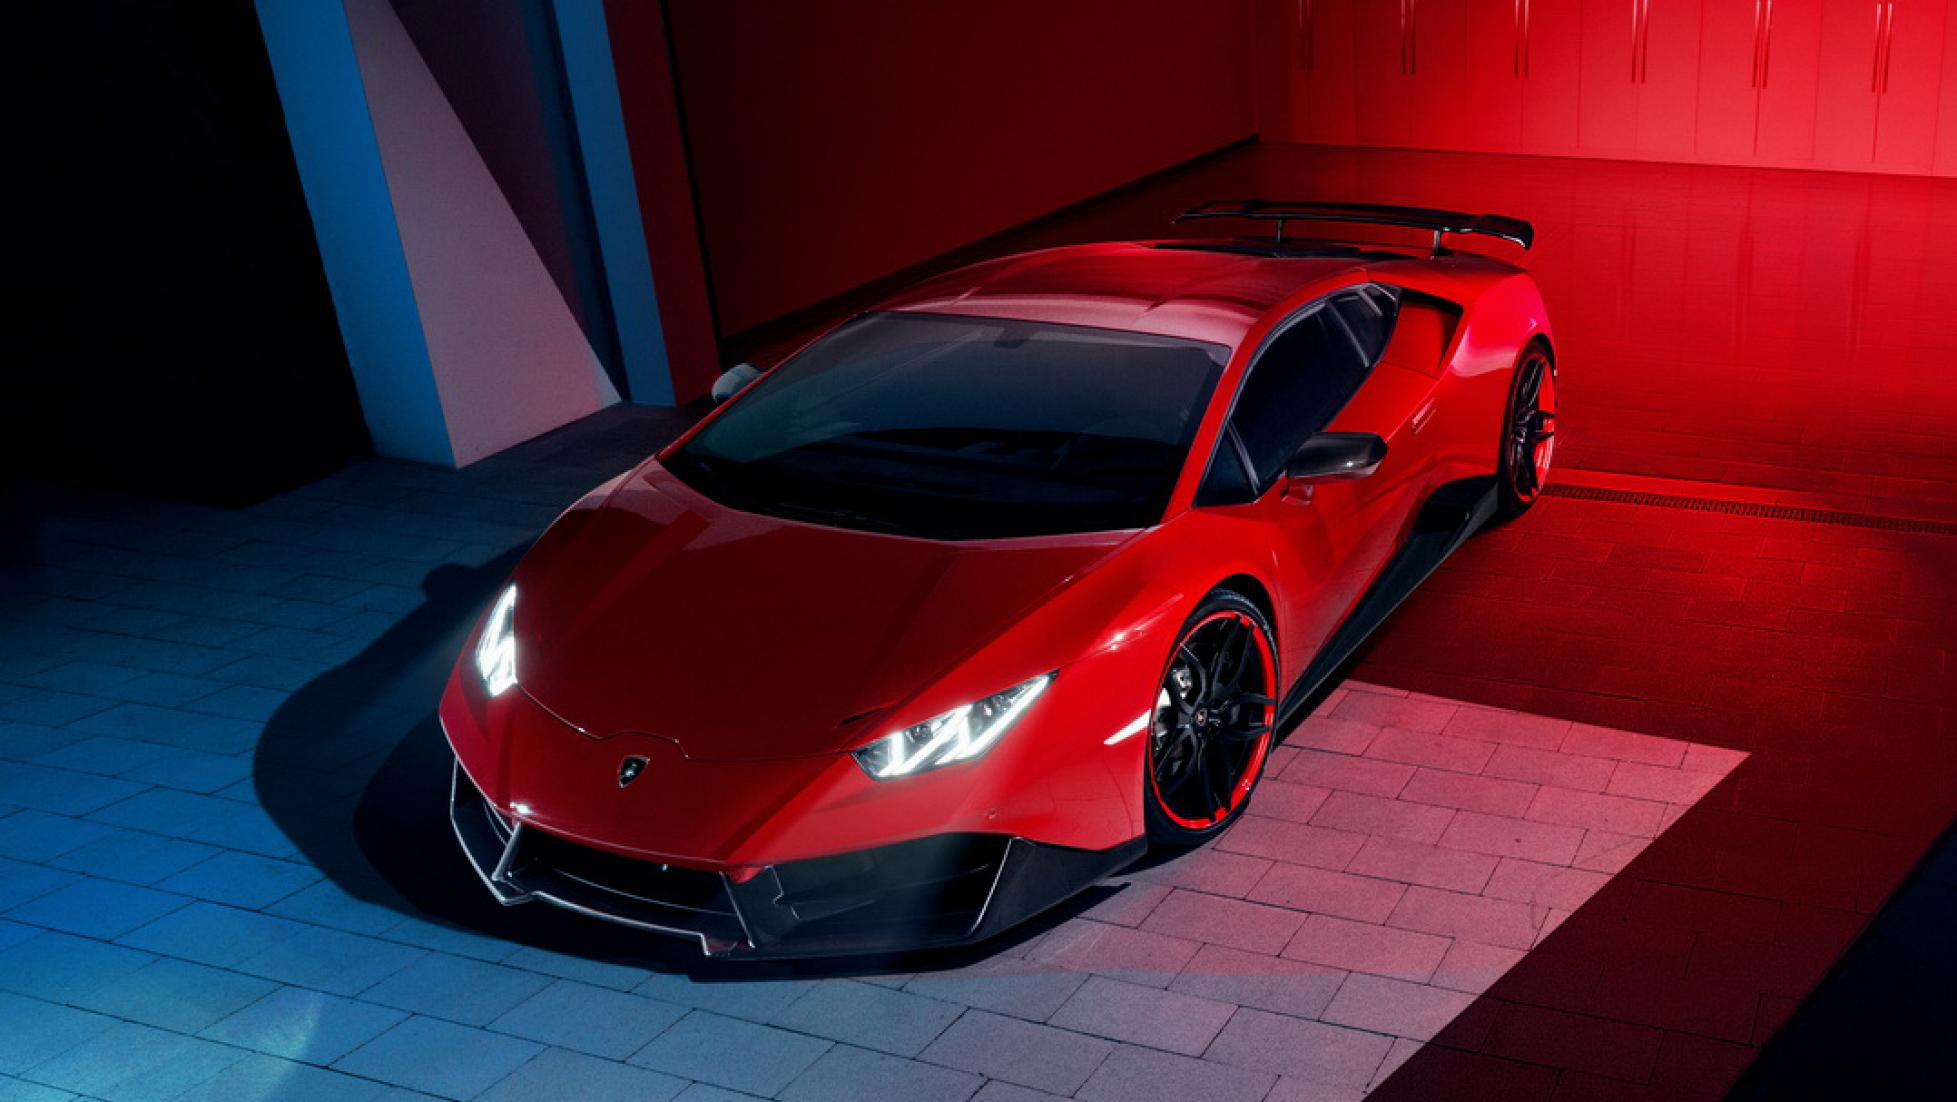 The 819bhp Lamborghini Huracan Oracle Finance